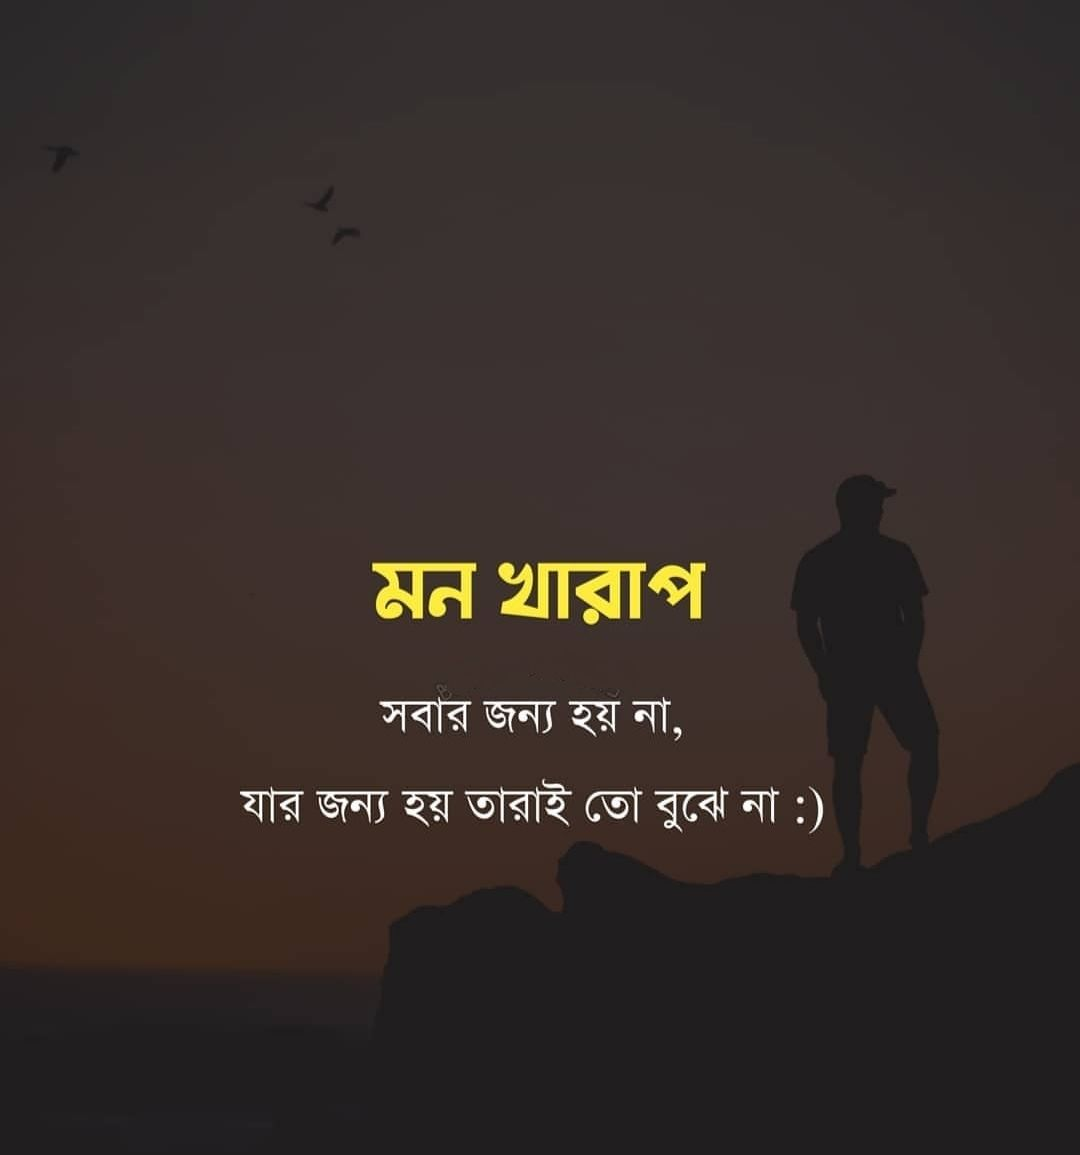 bengali sad whatsapp status download